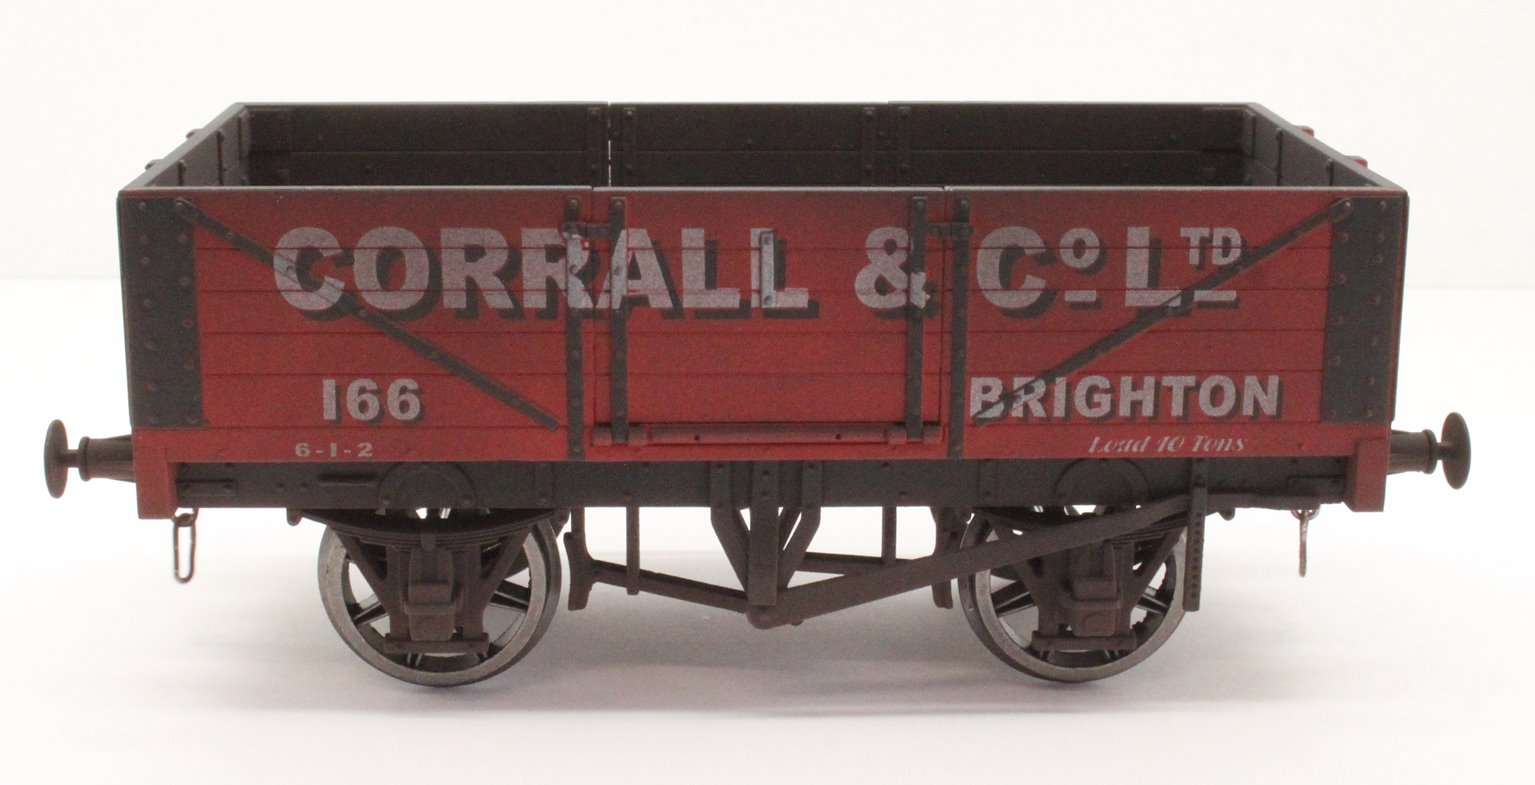 5 Plank Wagon Corrall & Co Ltd 166 Brighton - Weathered